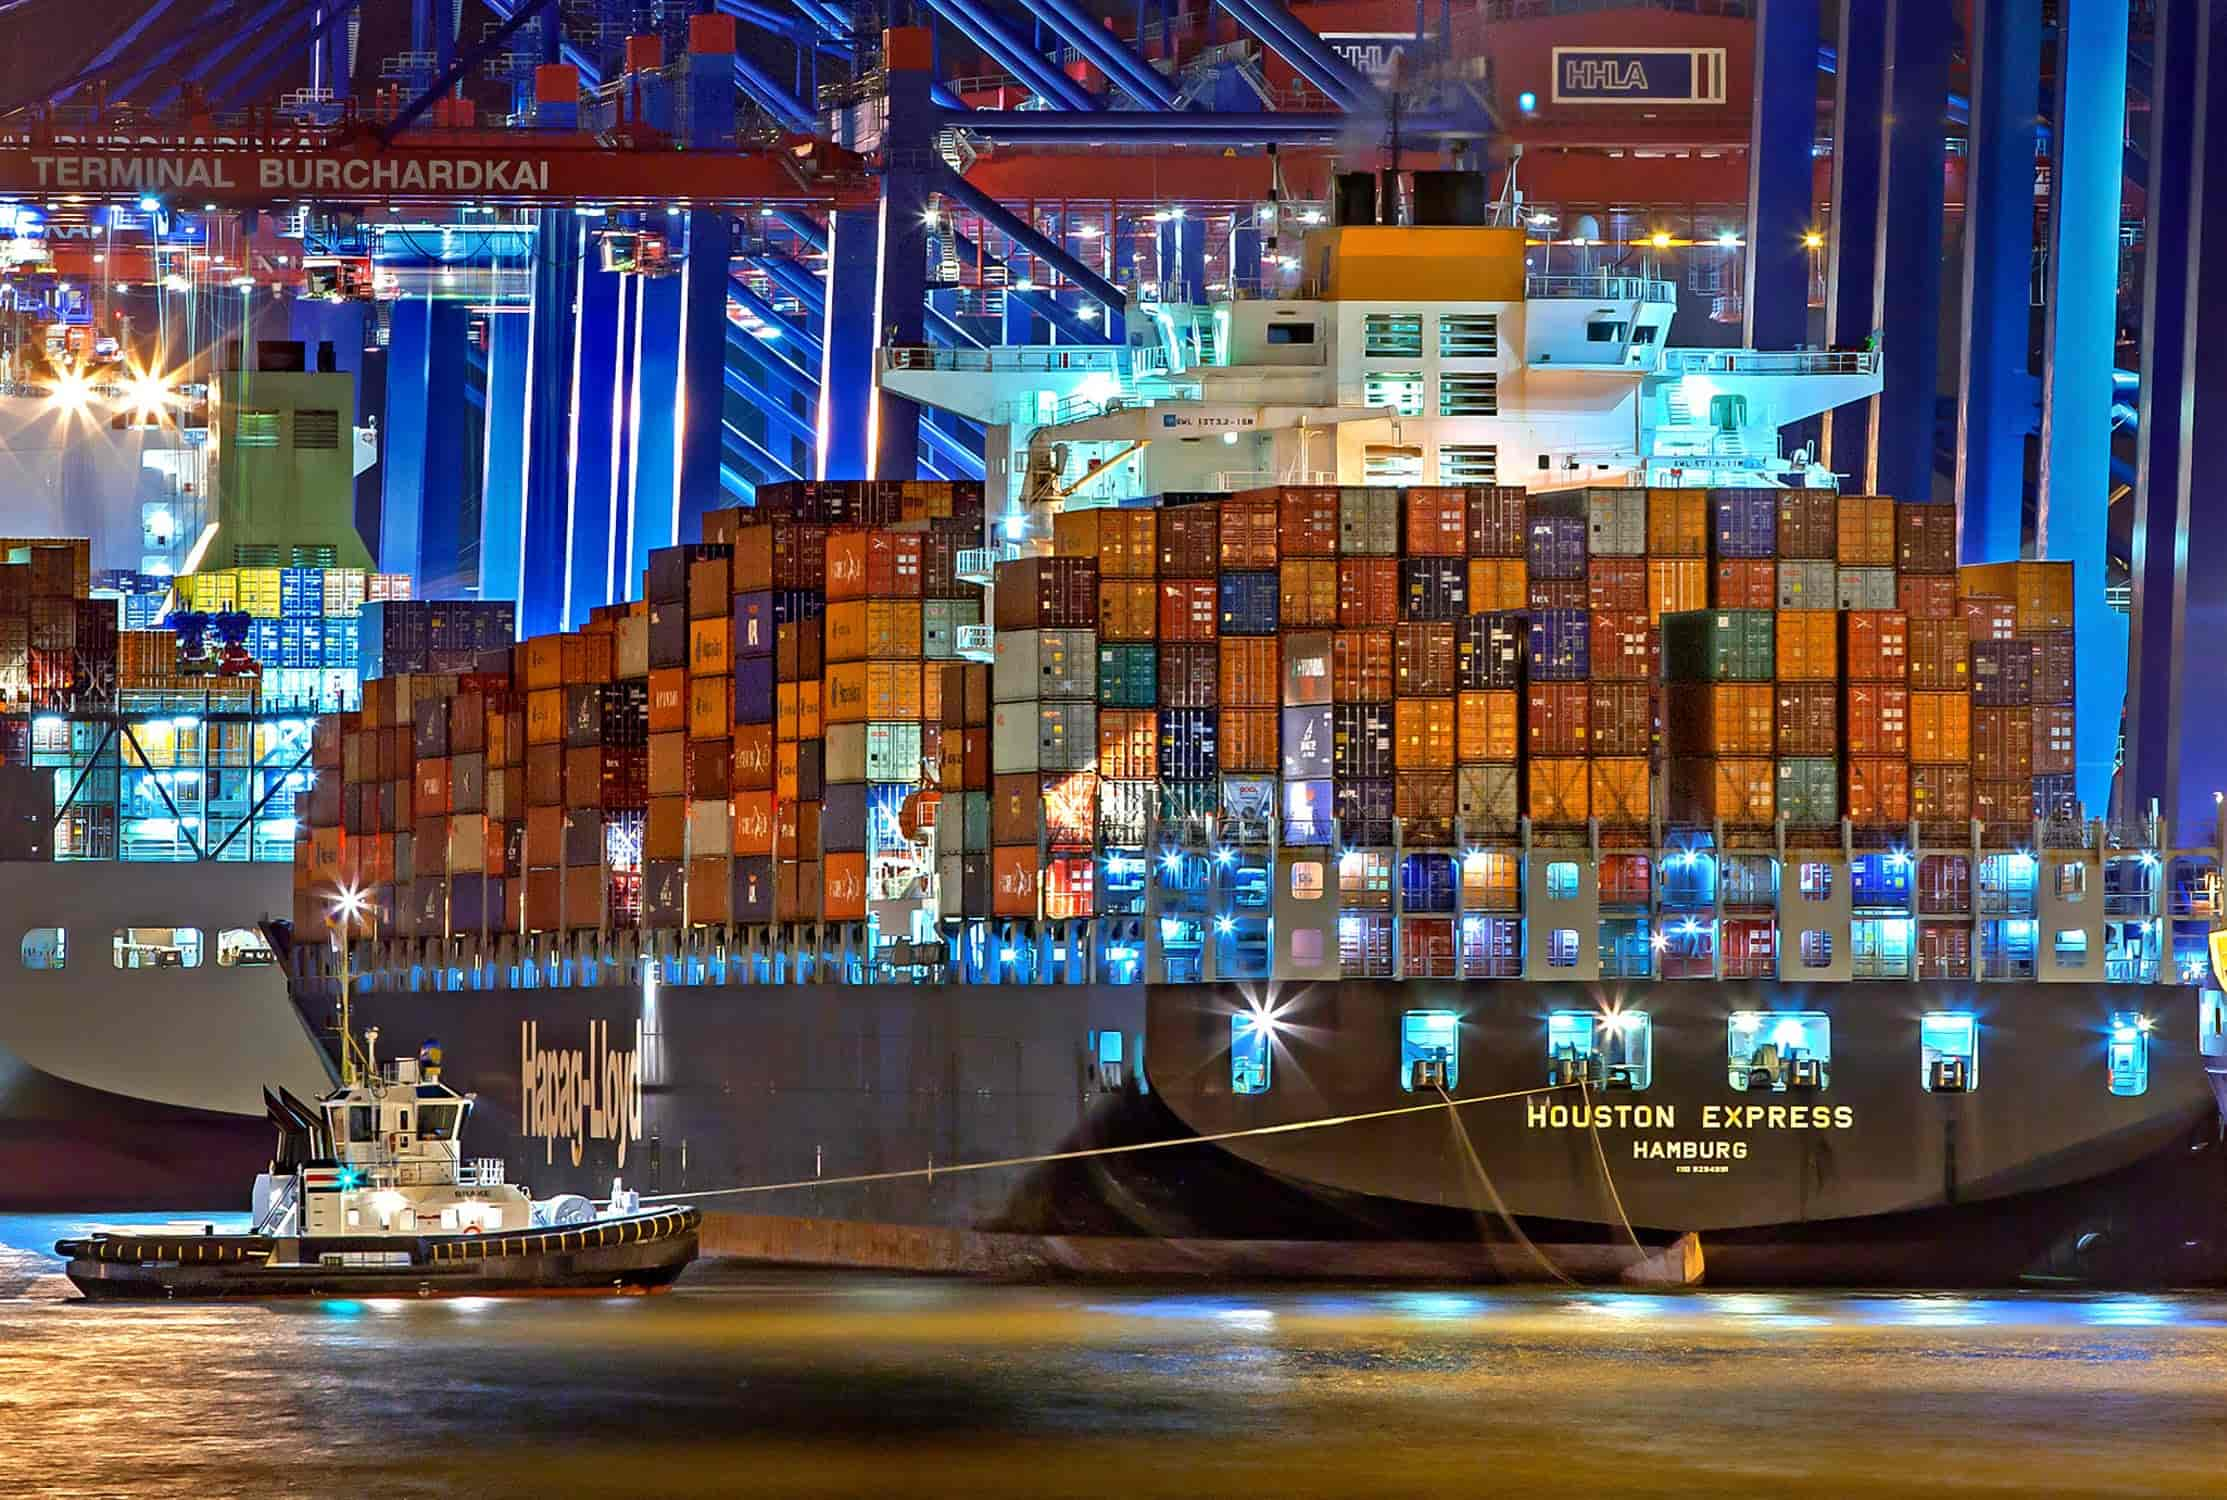 Things to take care of when shipping cargo internationally